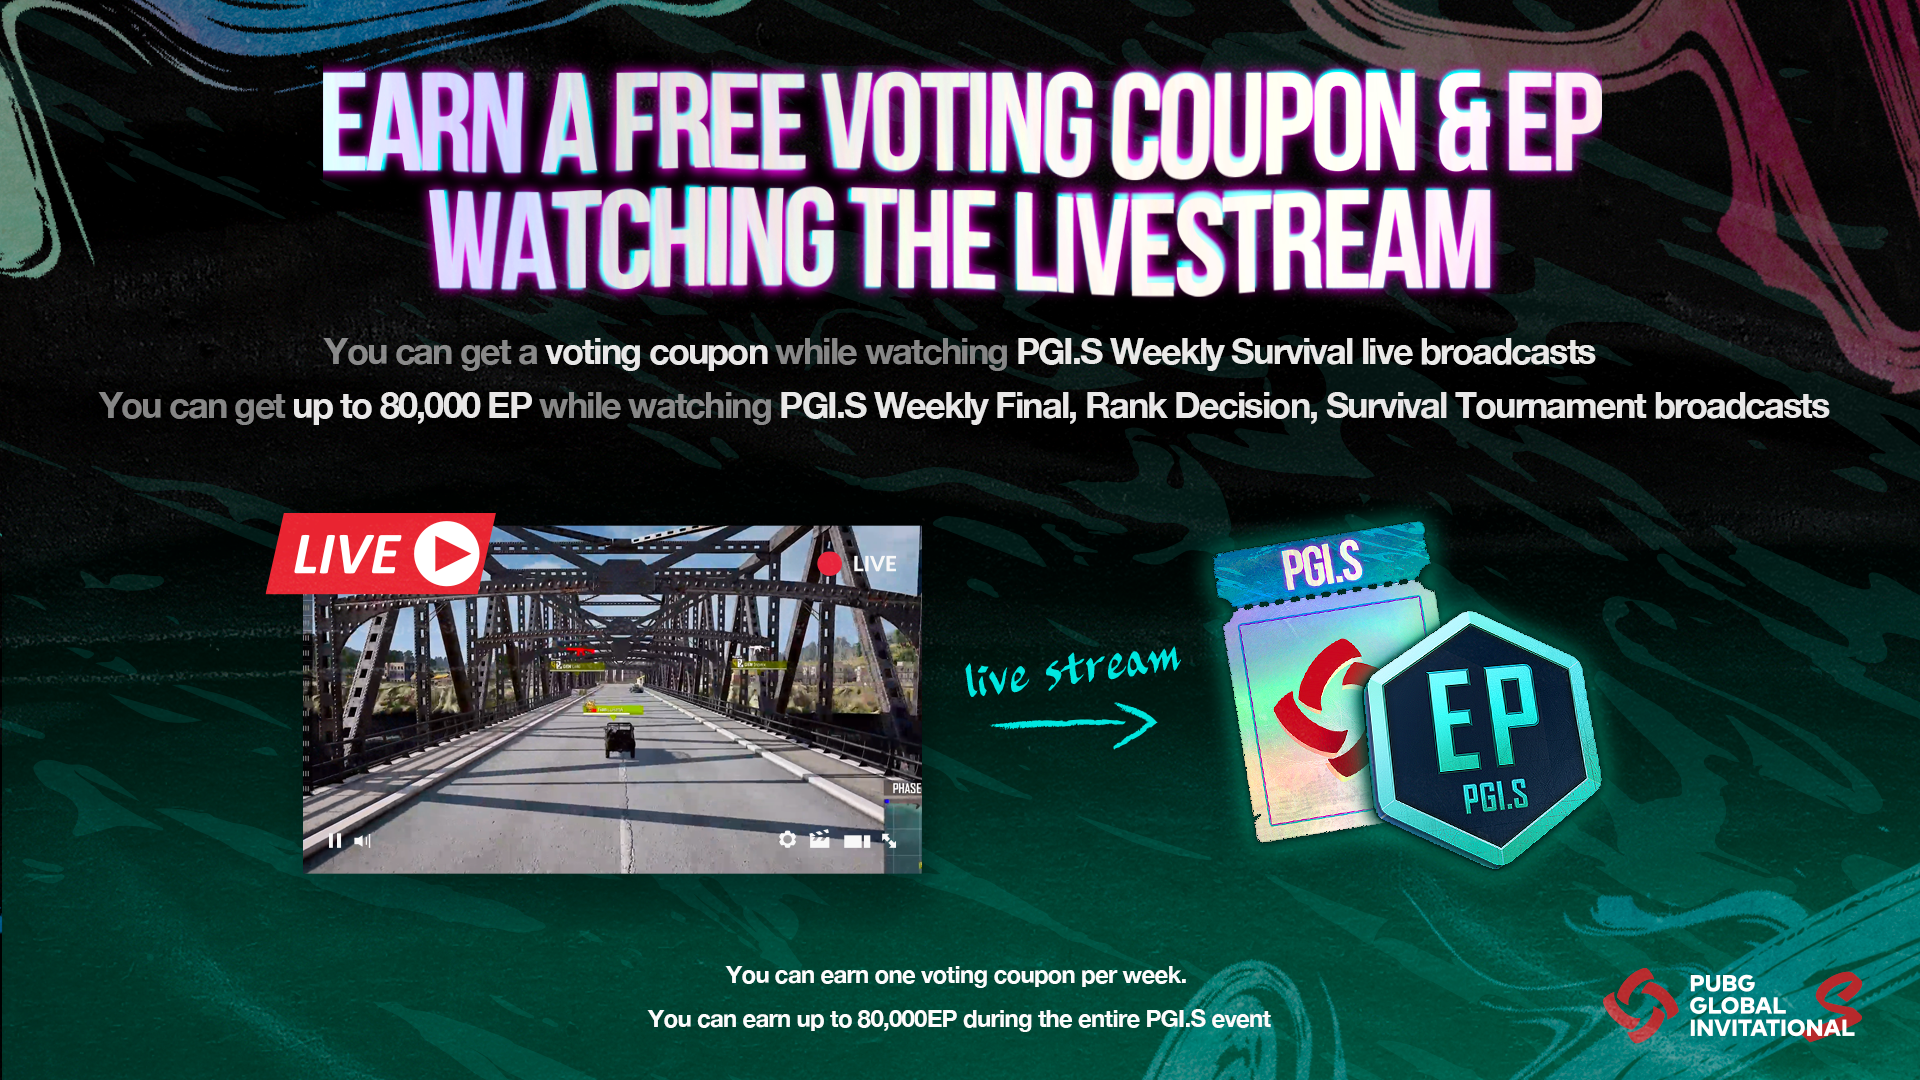 A-FREE-VOTING-COUPON-IN-LIVESTREAM_1_1 (2).png